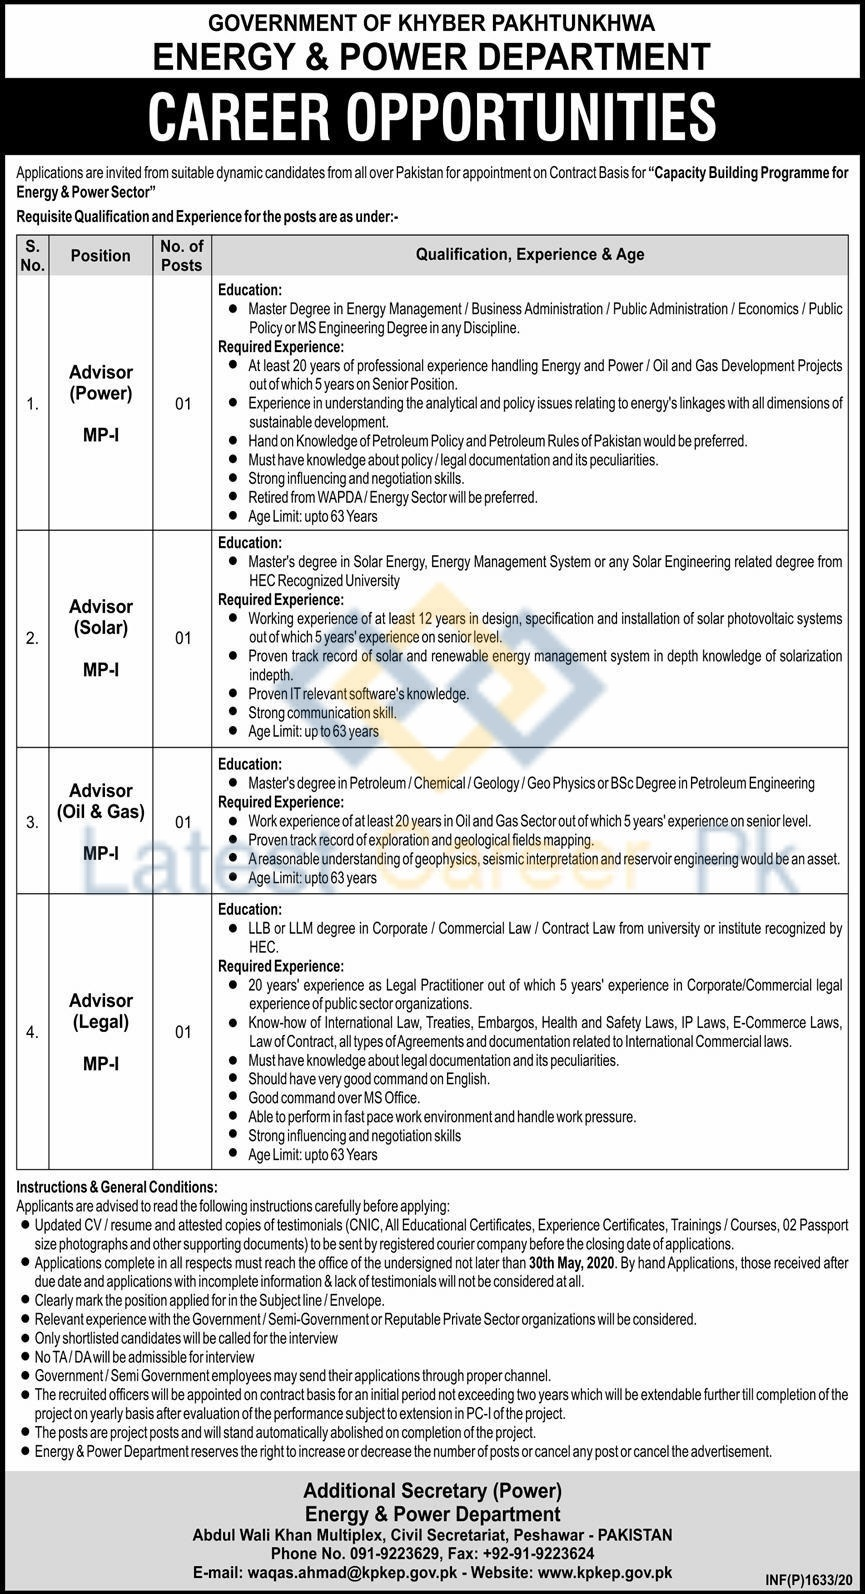 Govt-of-Khyber-Pakhtunkhwa-Energy-and-Power-Department-Peshawar-Jobs-09-May-2020